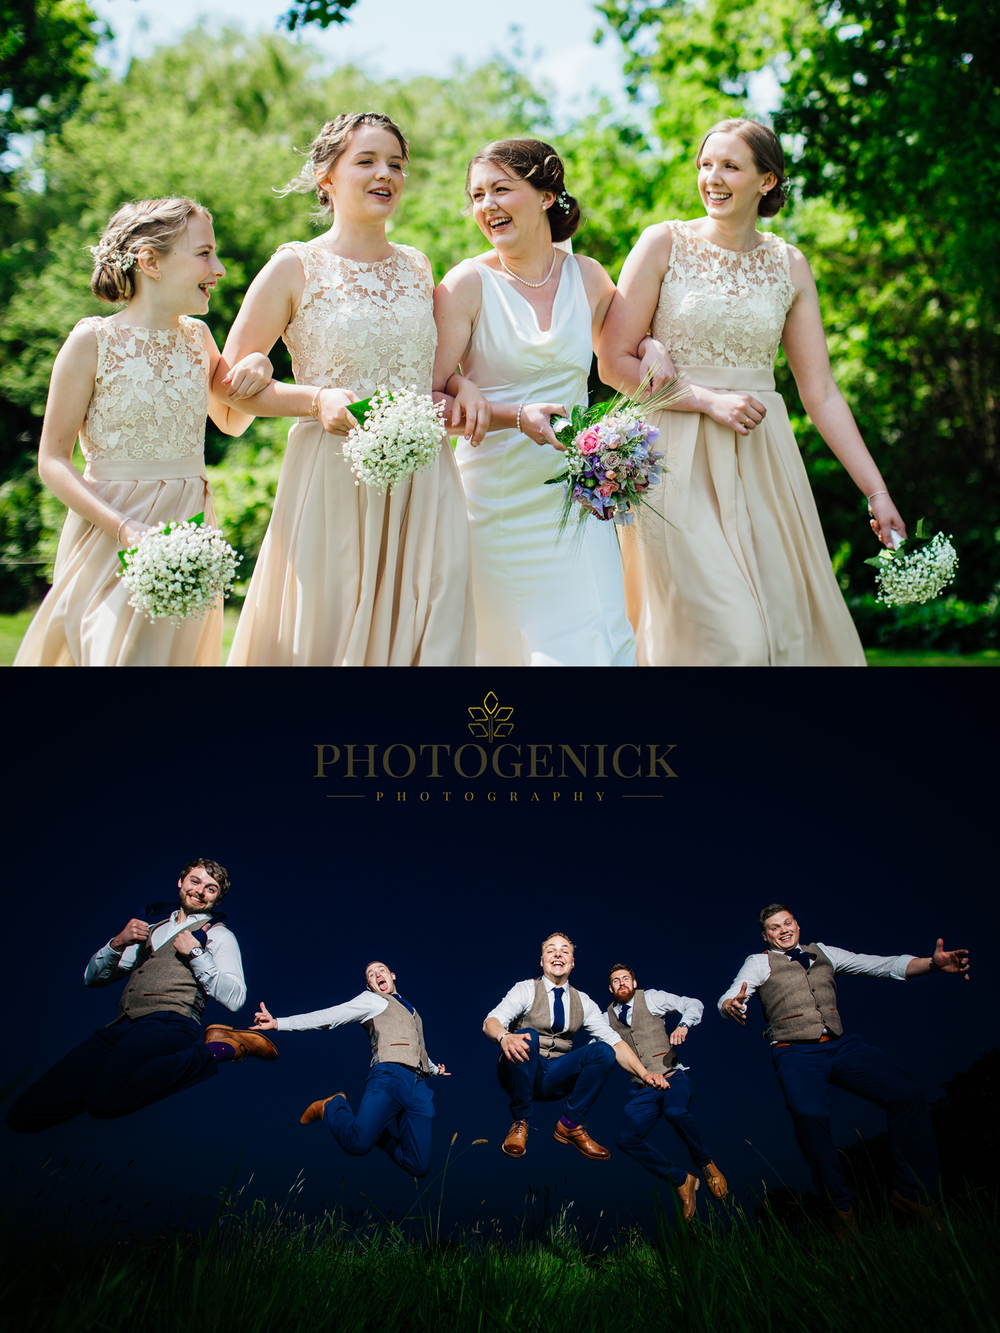 birmingham wedding photographer 1.jpg